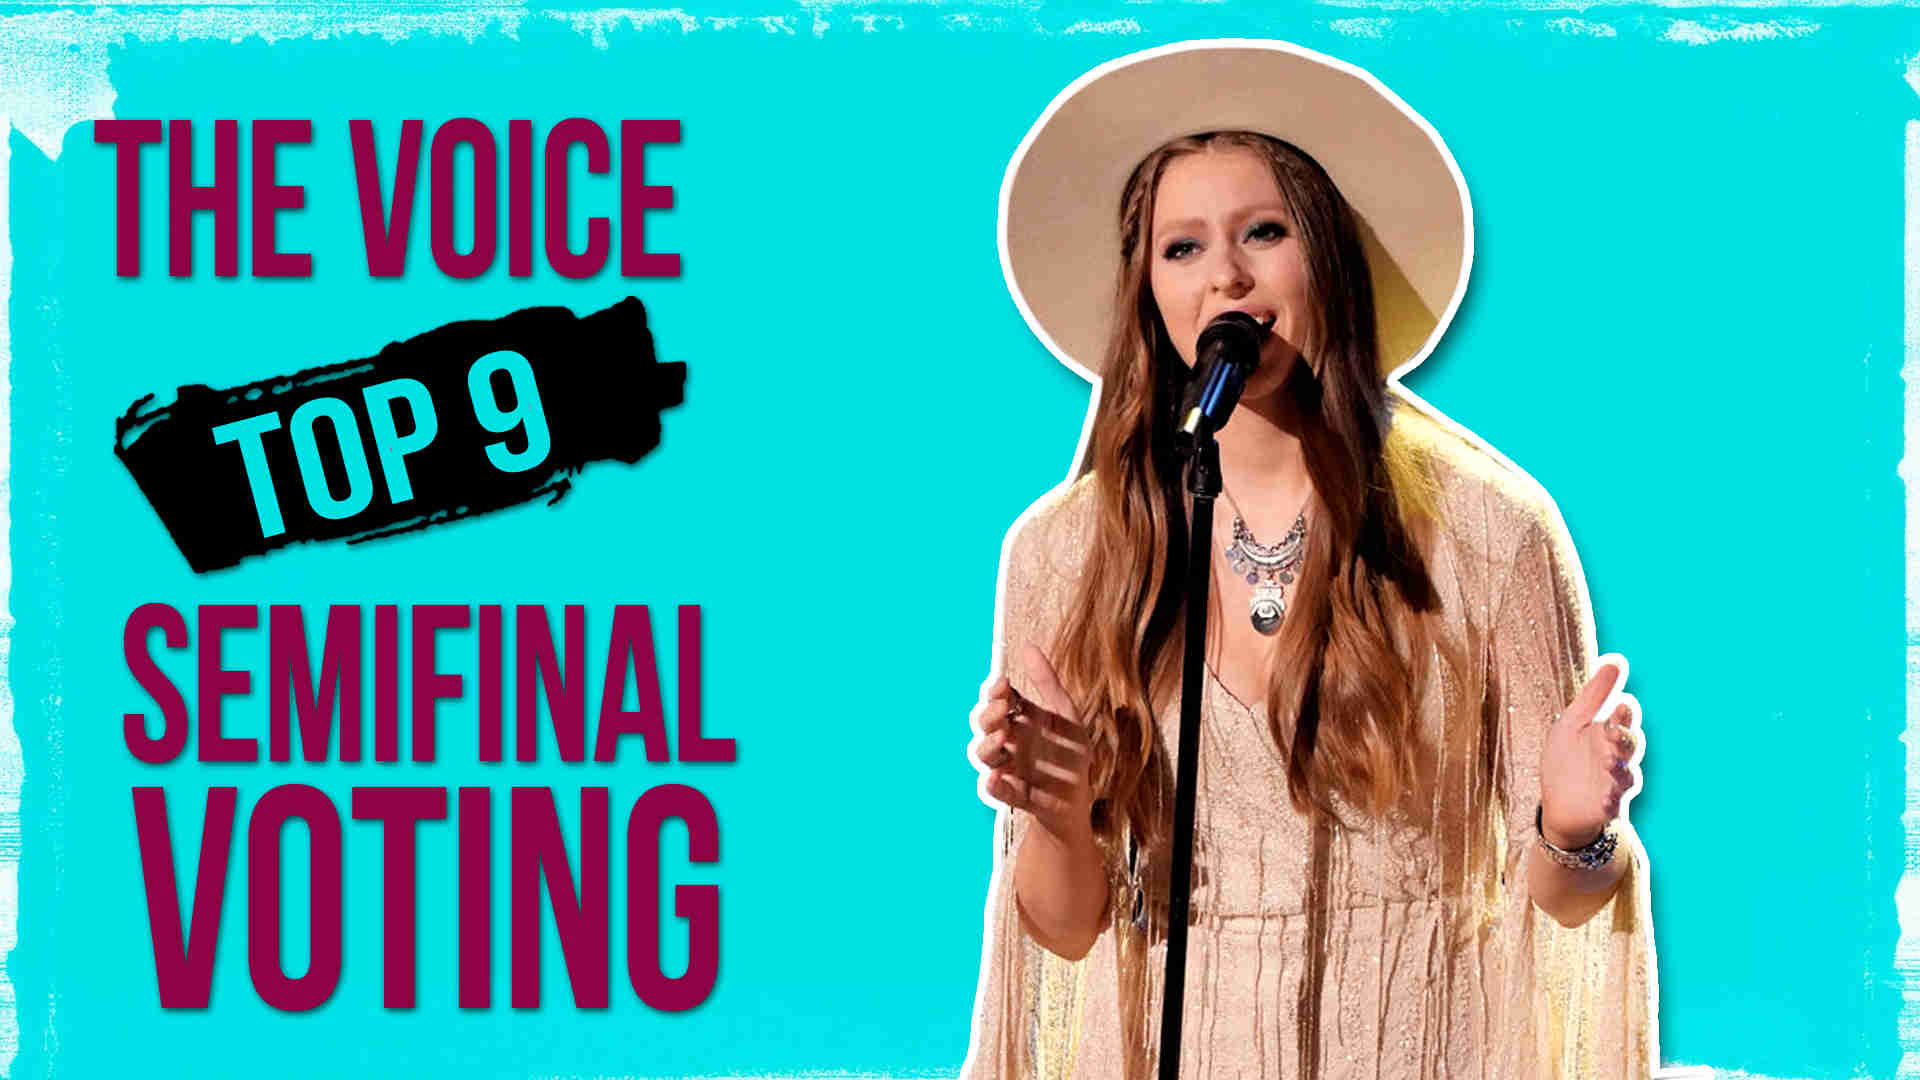 Vote Zan Fiskum The Voice 2020 Semifinals Voting Tonight on 11 May 2020